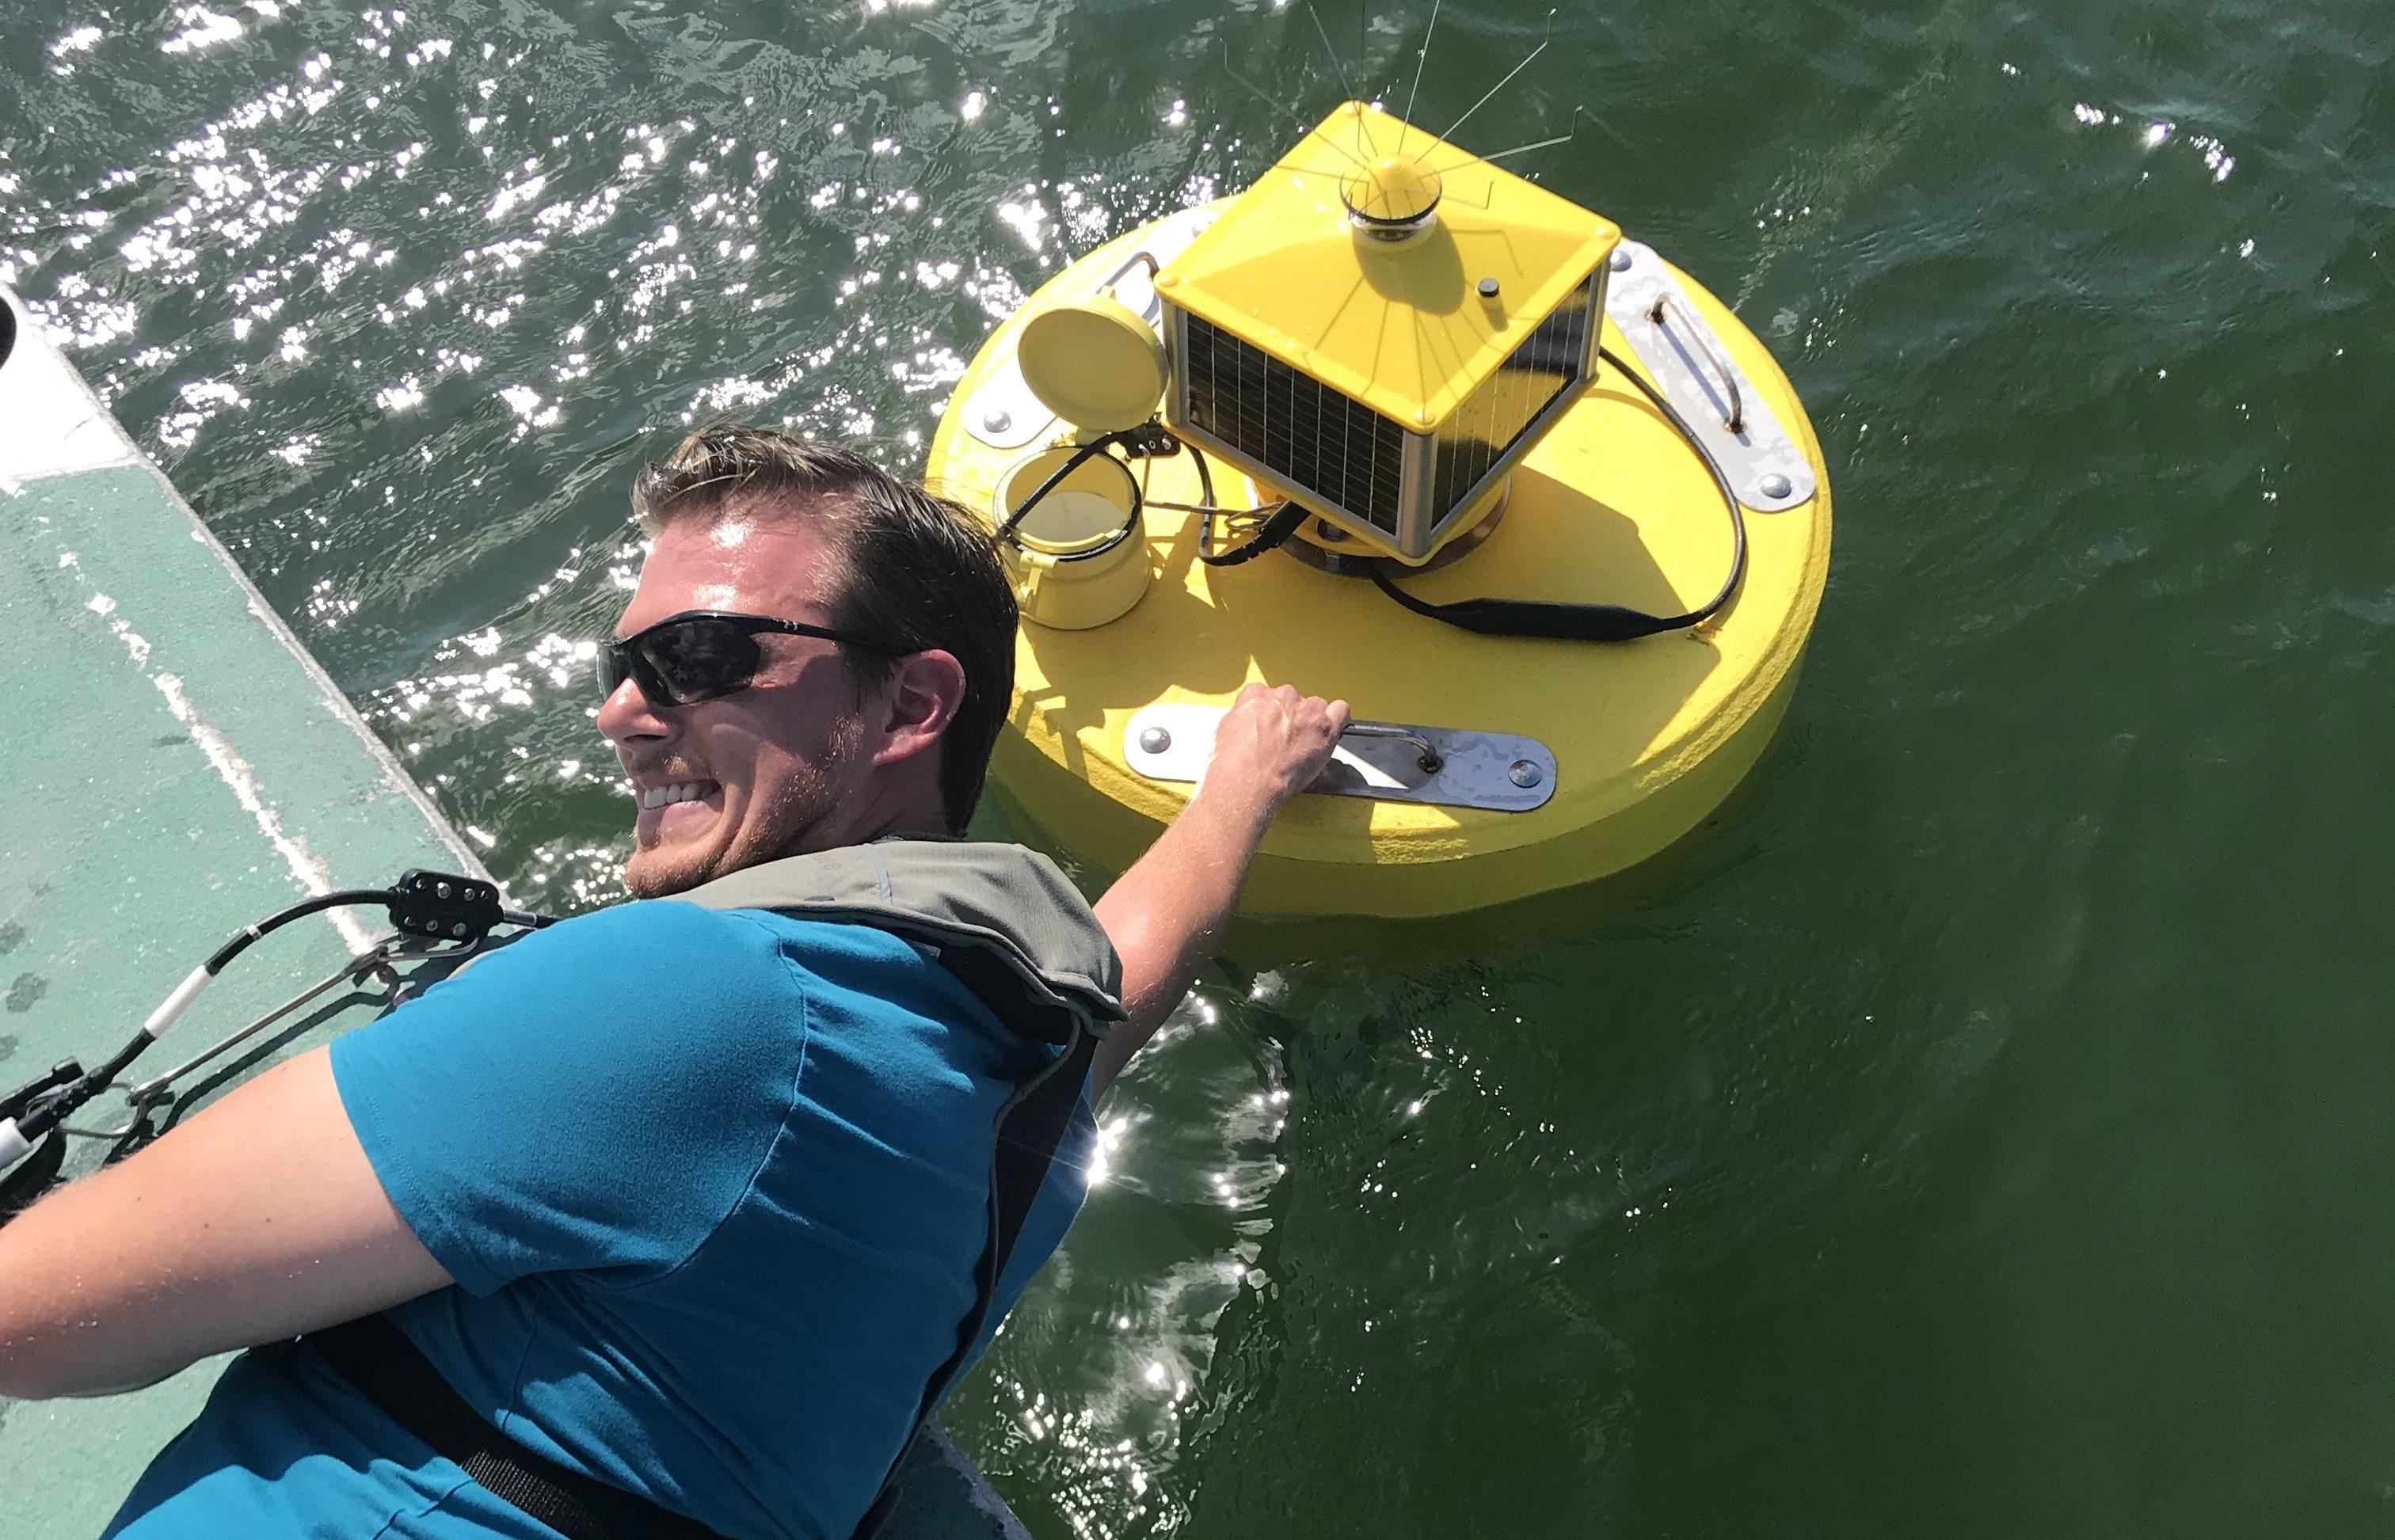 Monitoring buoy deployed to test water quality near Haulover Inlet